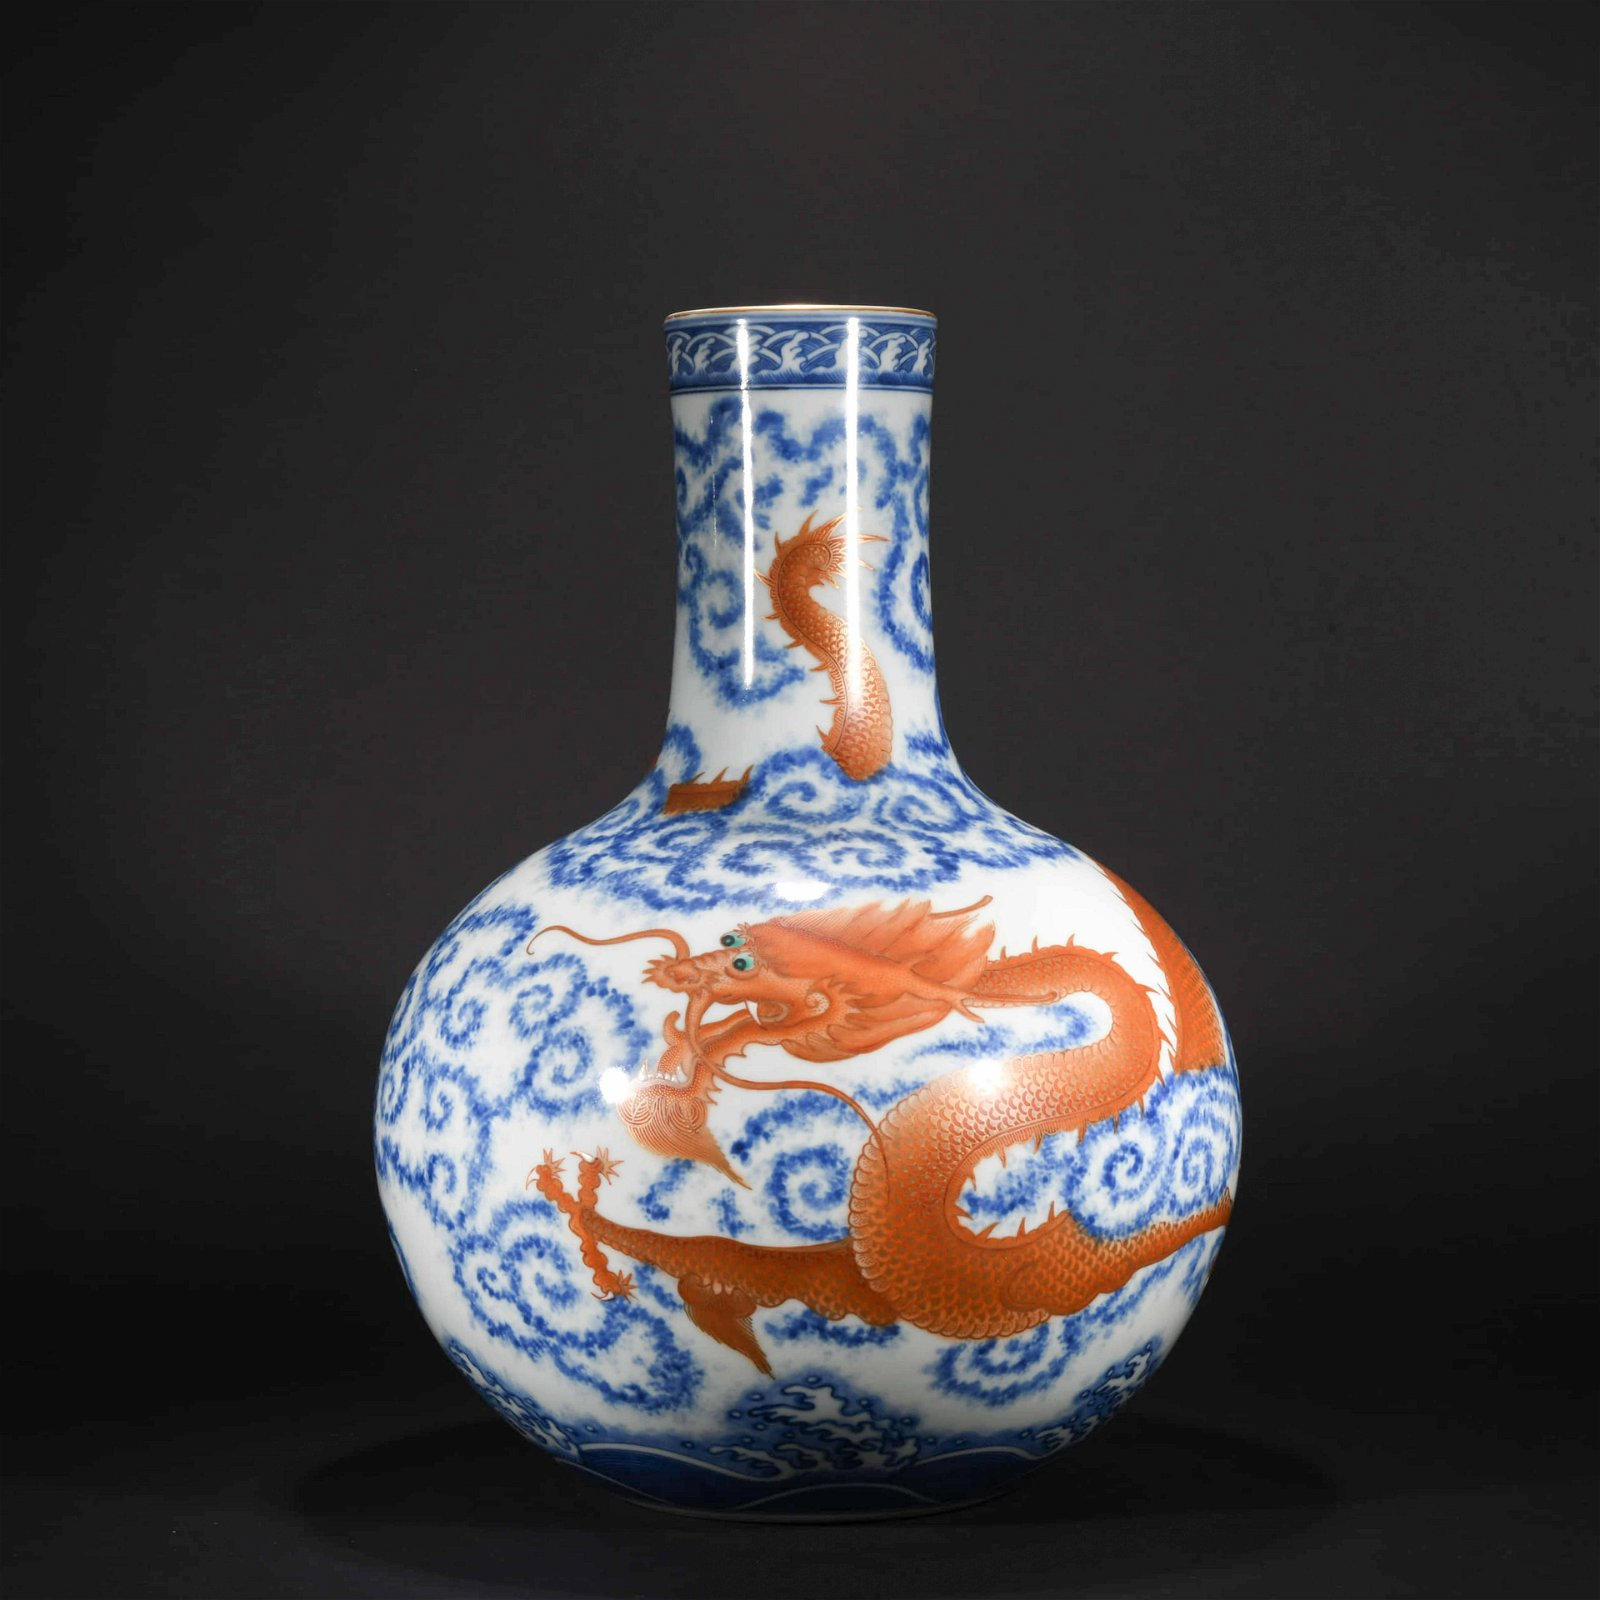 A CHINESE BLUE AND WHITE ALUM RED PORCELAIN GLOBULAR